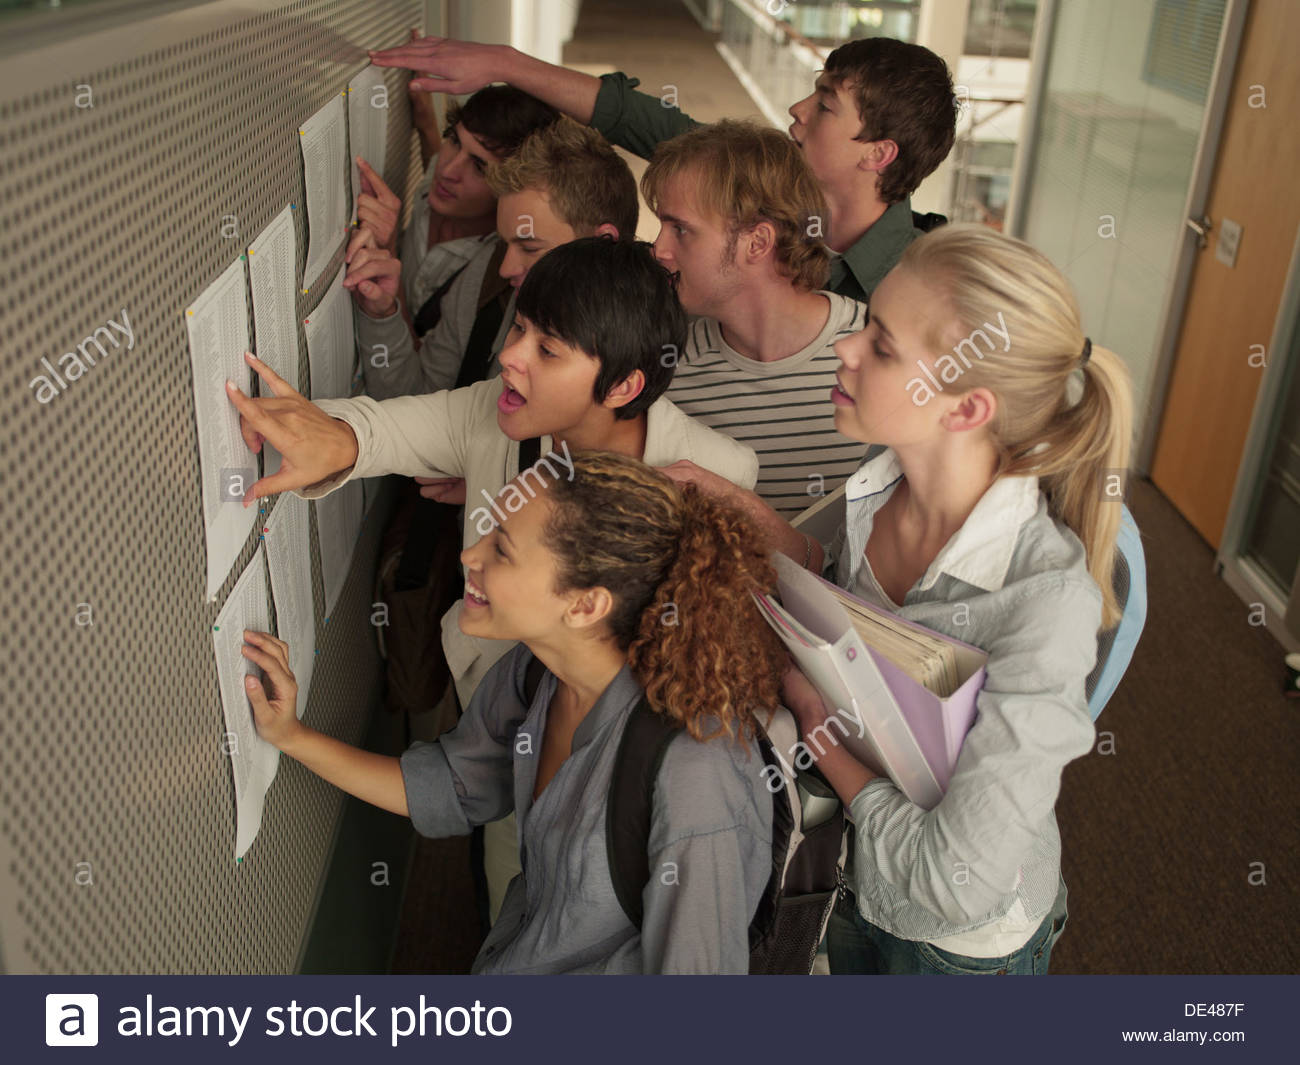 College students checking test scores in corridor - Stock Image